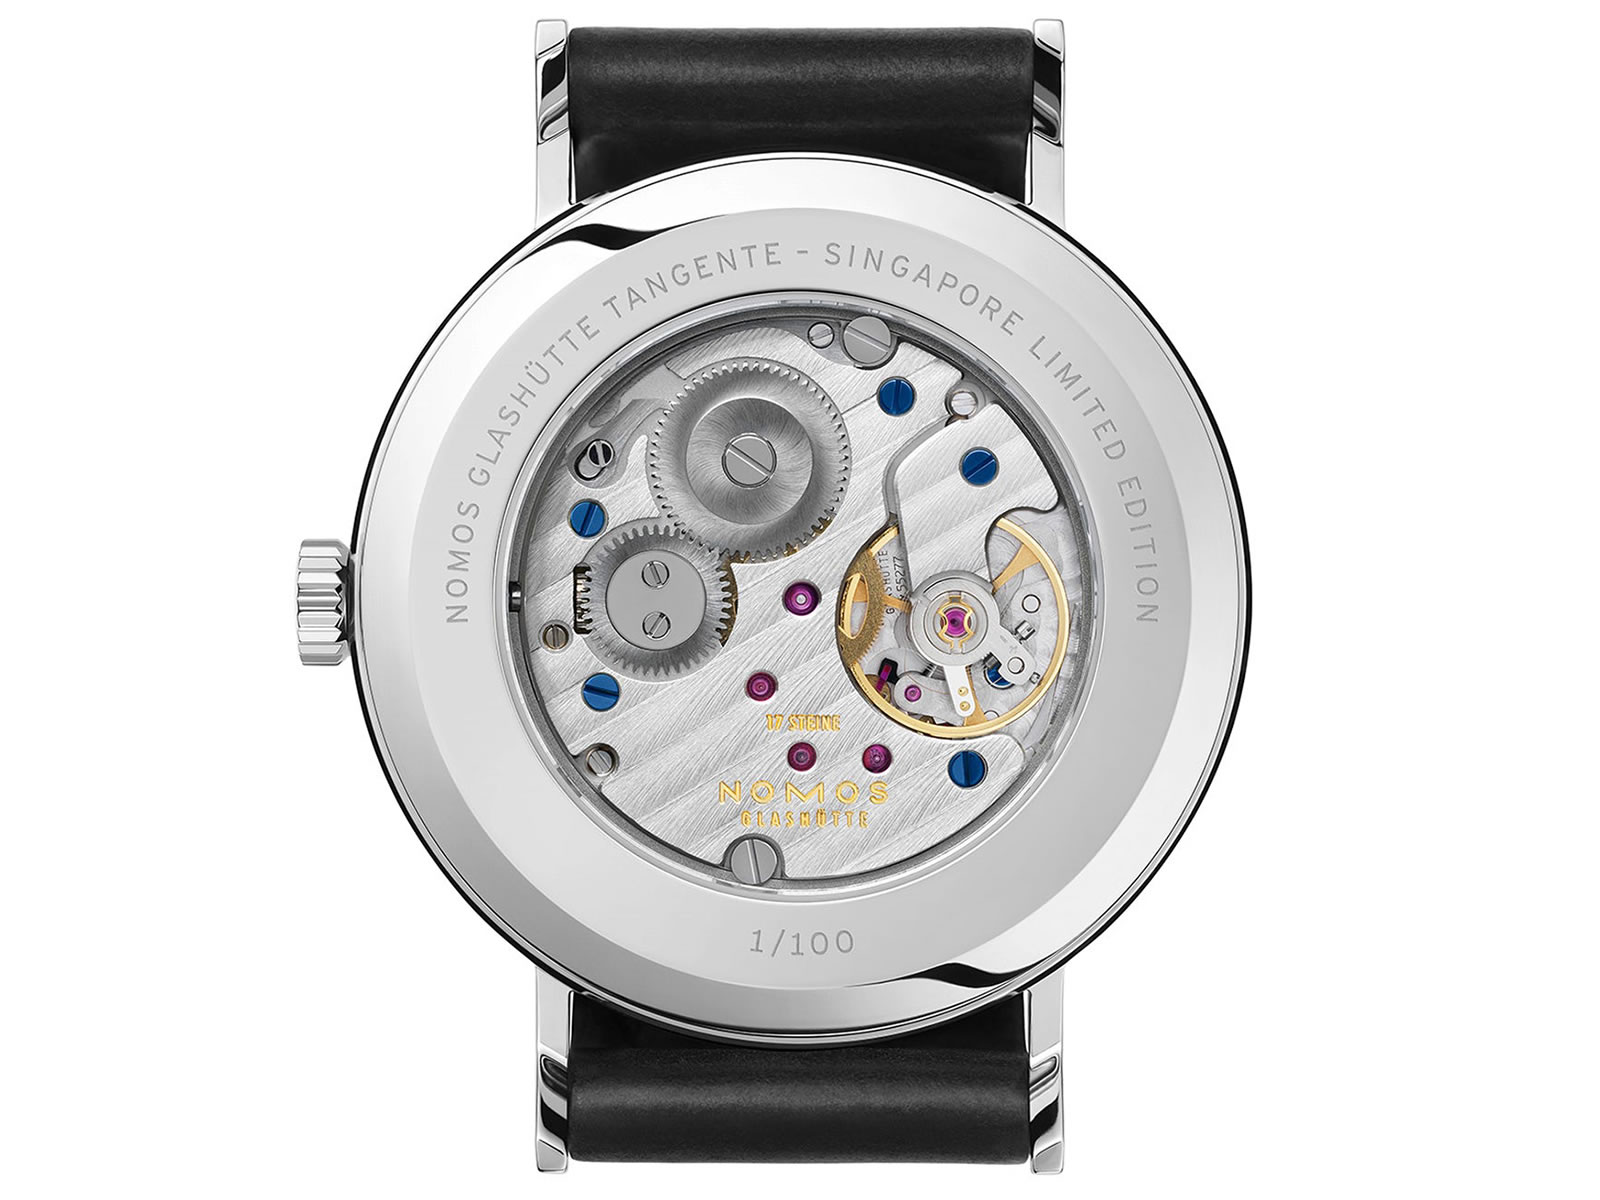 nomos-glashutte-tangente-red-dot-2018-7-.jpg